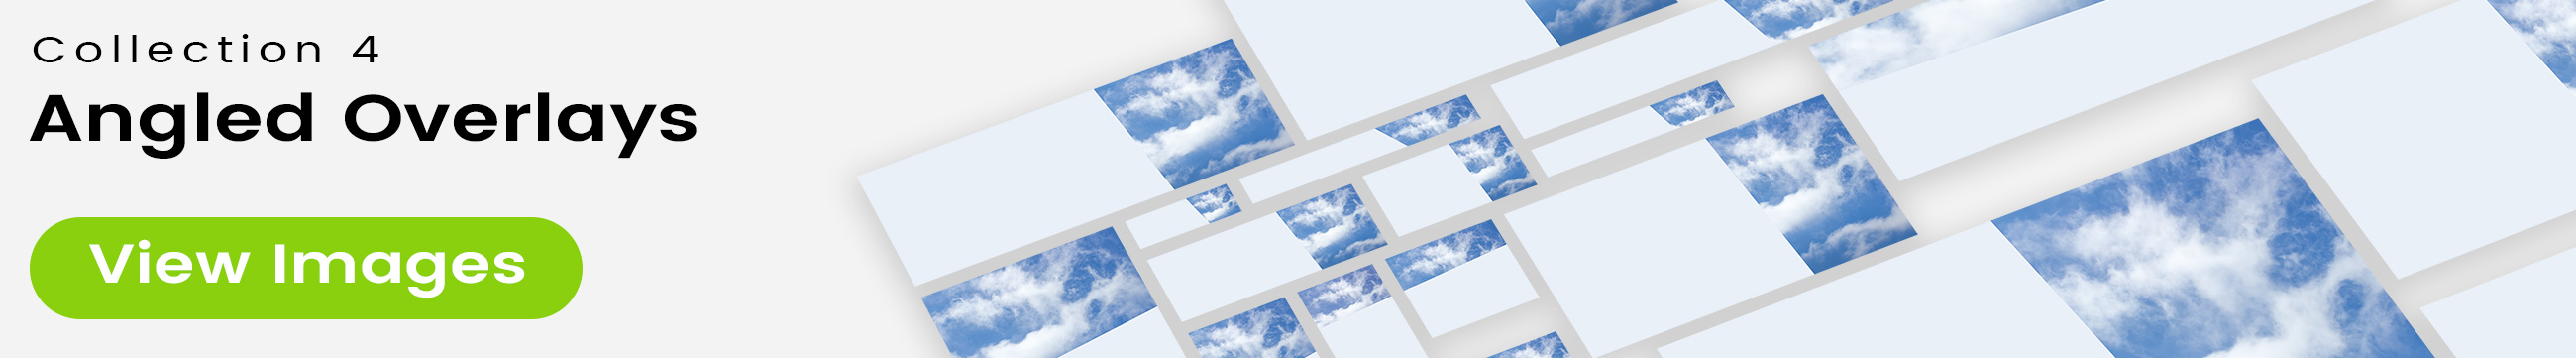 See 25 bonus images included with clouds stock image 9482. Collection 4 of 4 features an angled overlay design customized with a color that complements each photo.